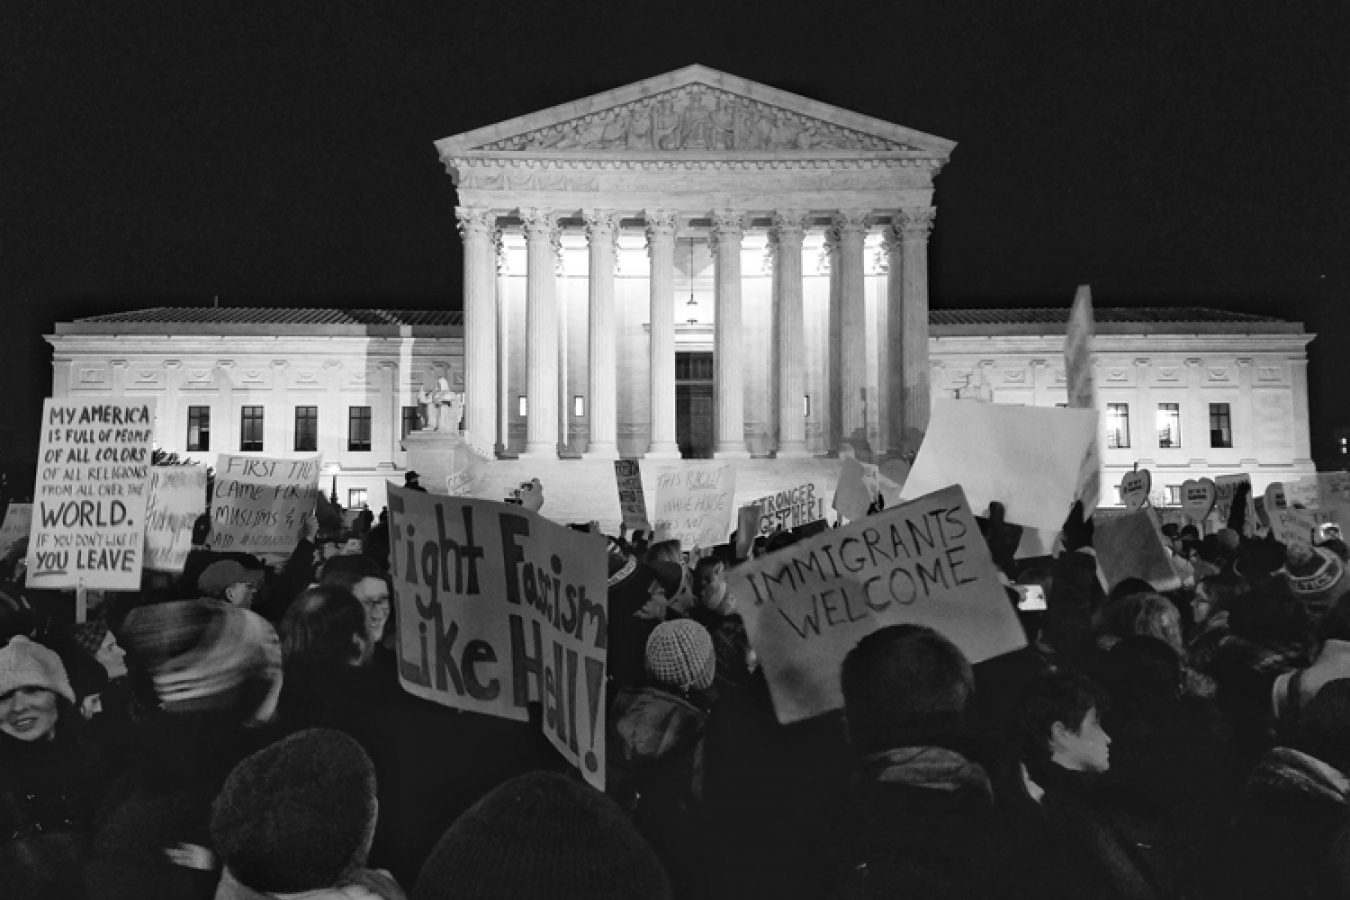 US supreme court protests